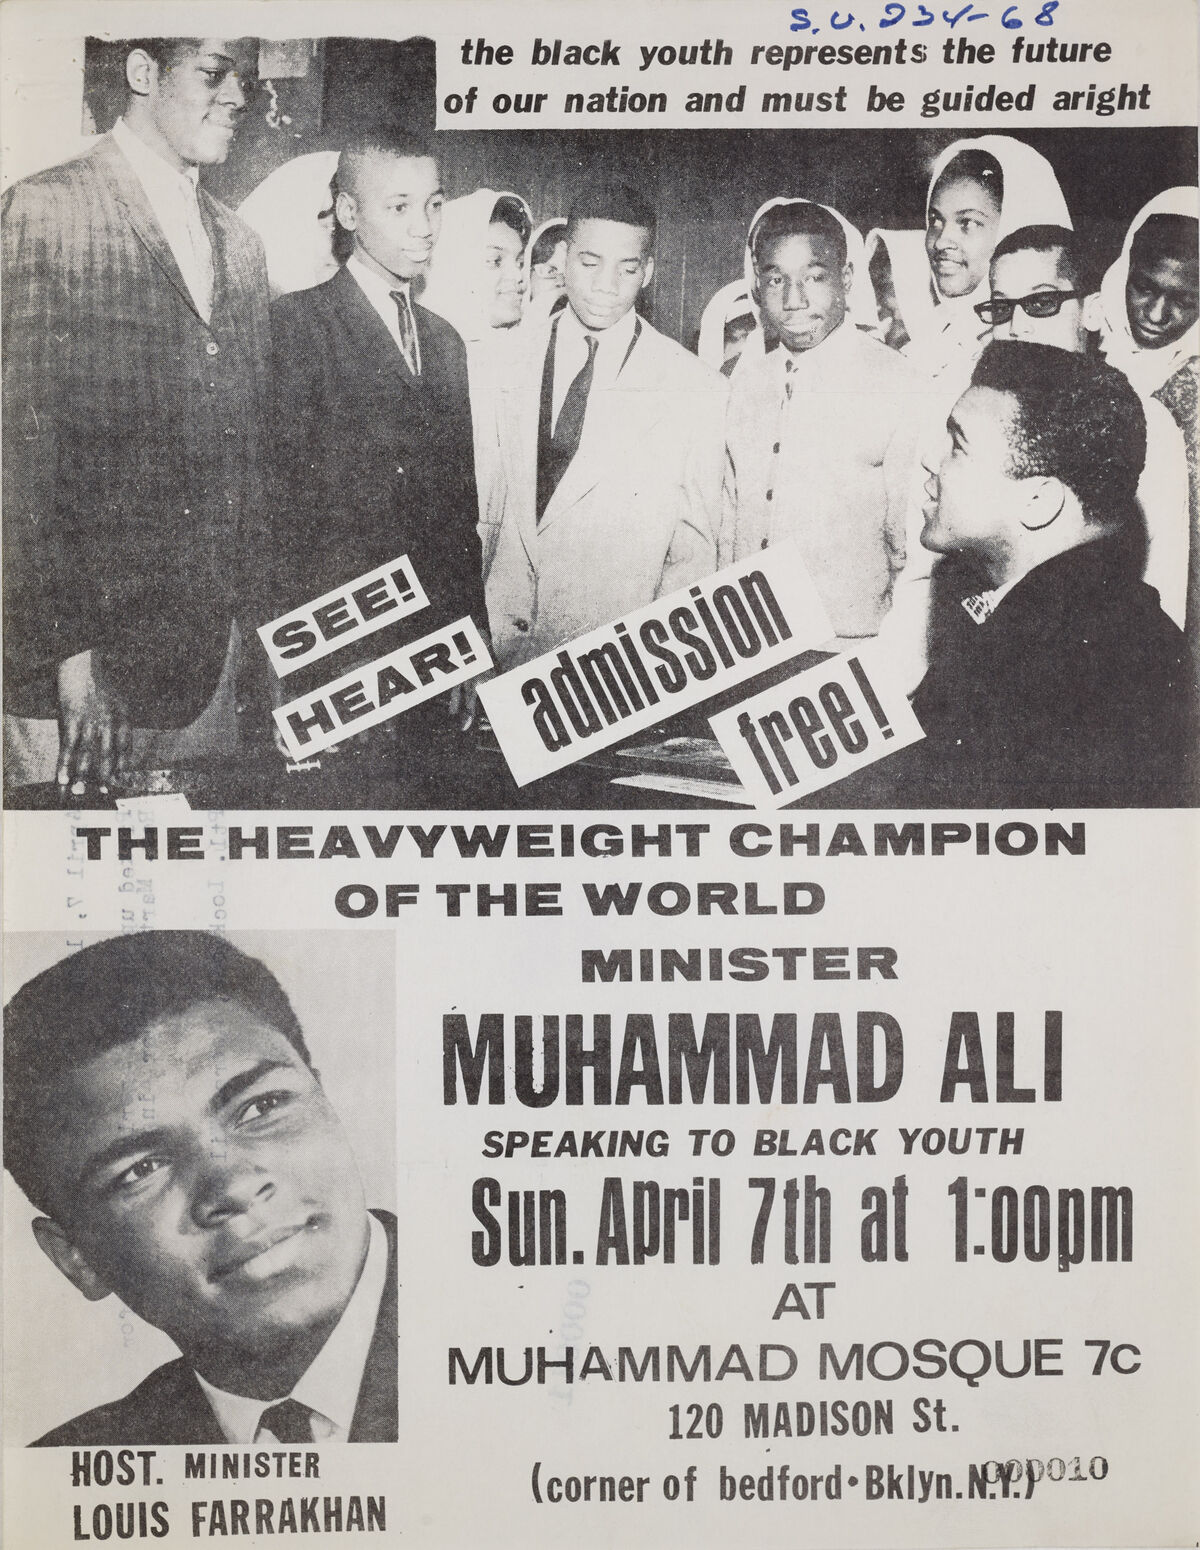 Muhammad Ali Speaks at Muhammad Mosque 7c, April 7, 1968. Courtesy of the New York City Department of Records & Information Service.